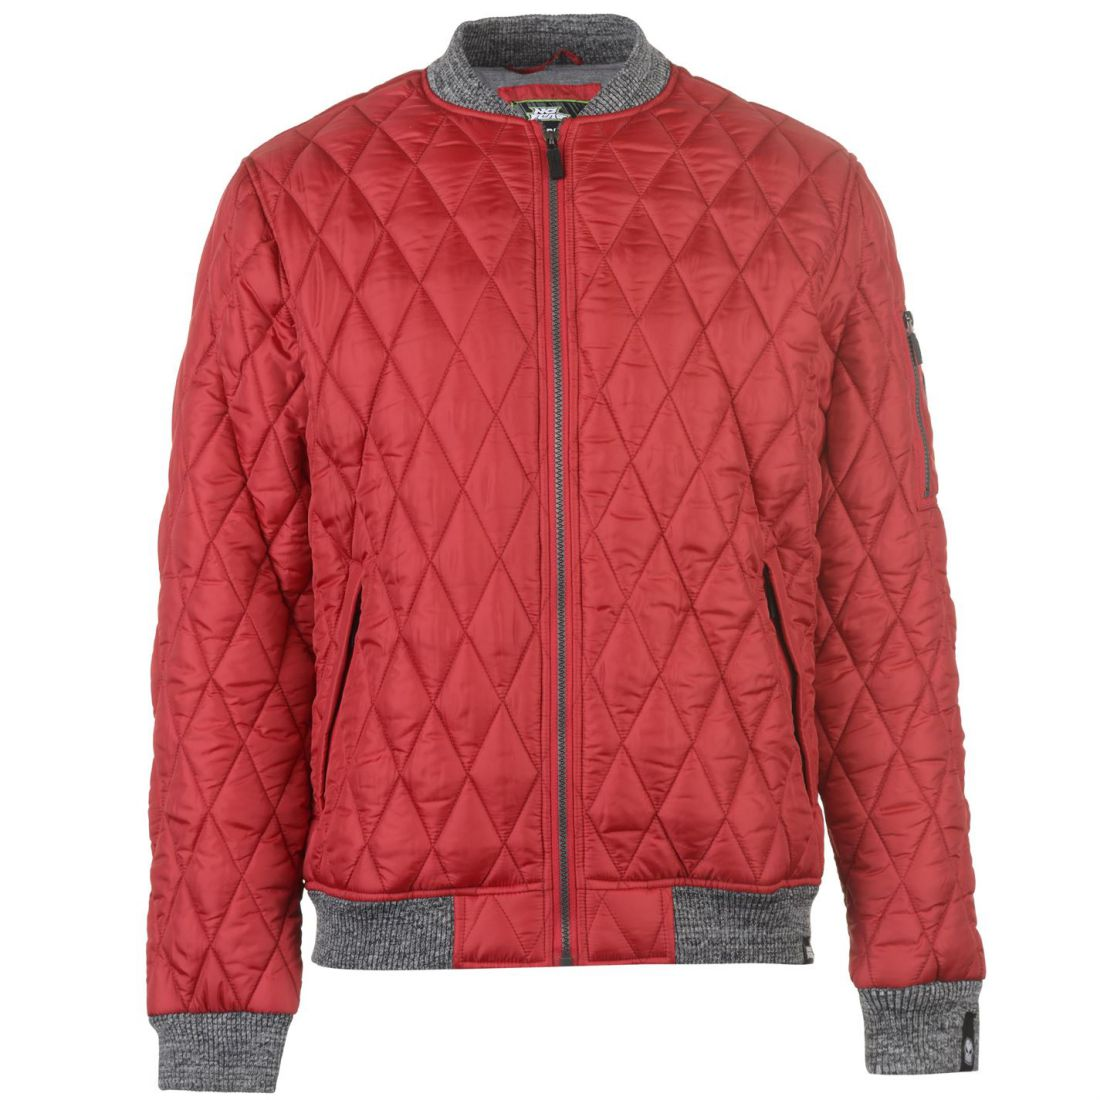 No-Fear-Quilted-Bomber-Jacket-Mens-Gents-Coat-Top-Full-Length-Sleeve-Zip-Zipped thumbnail 2